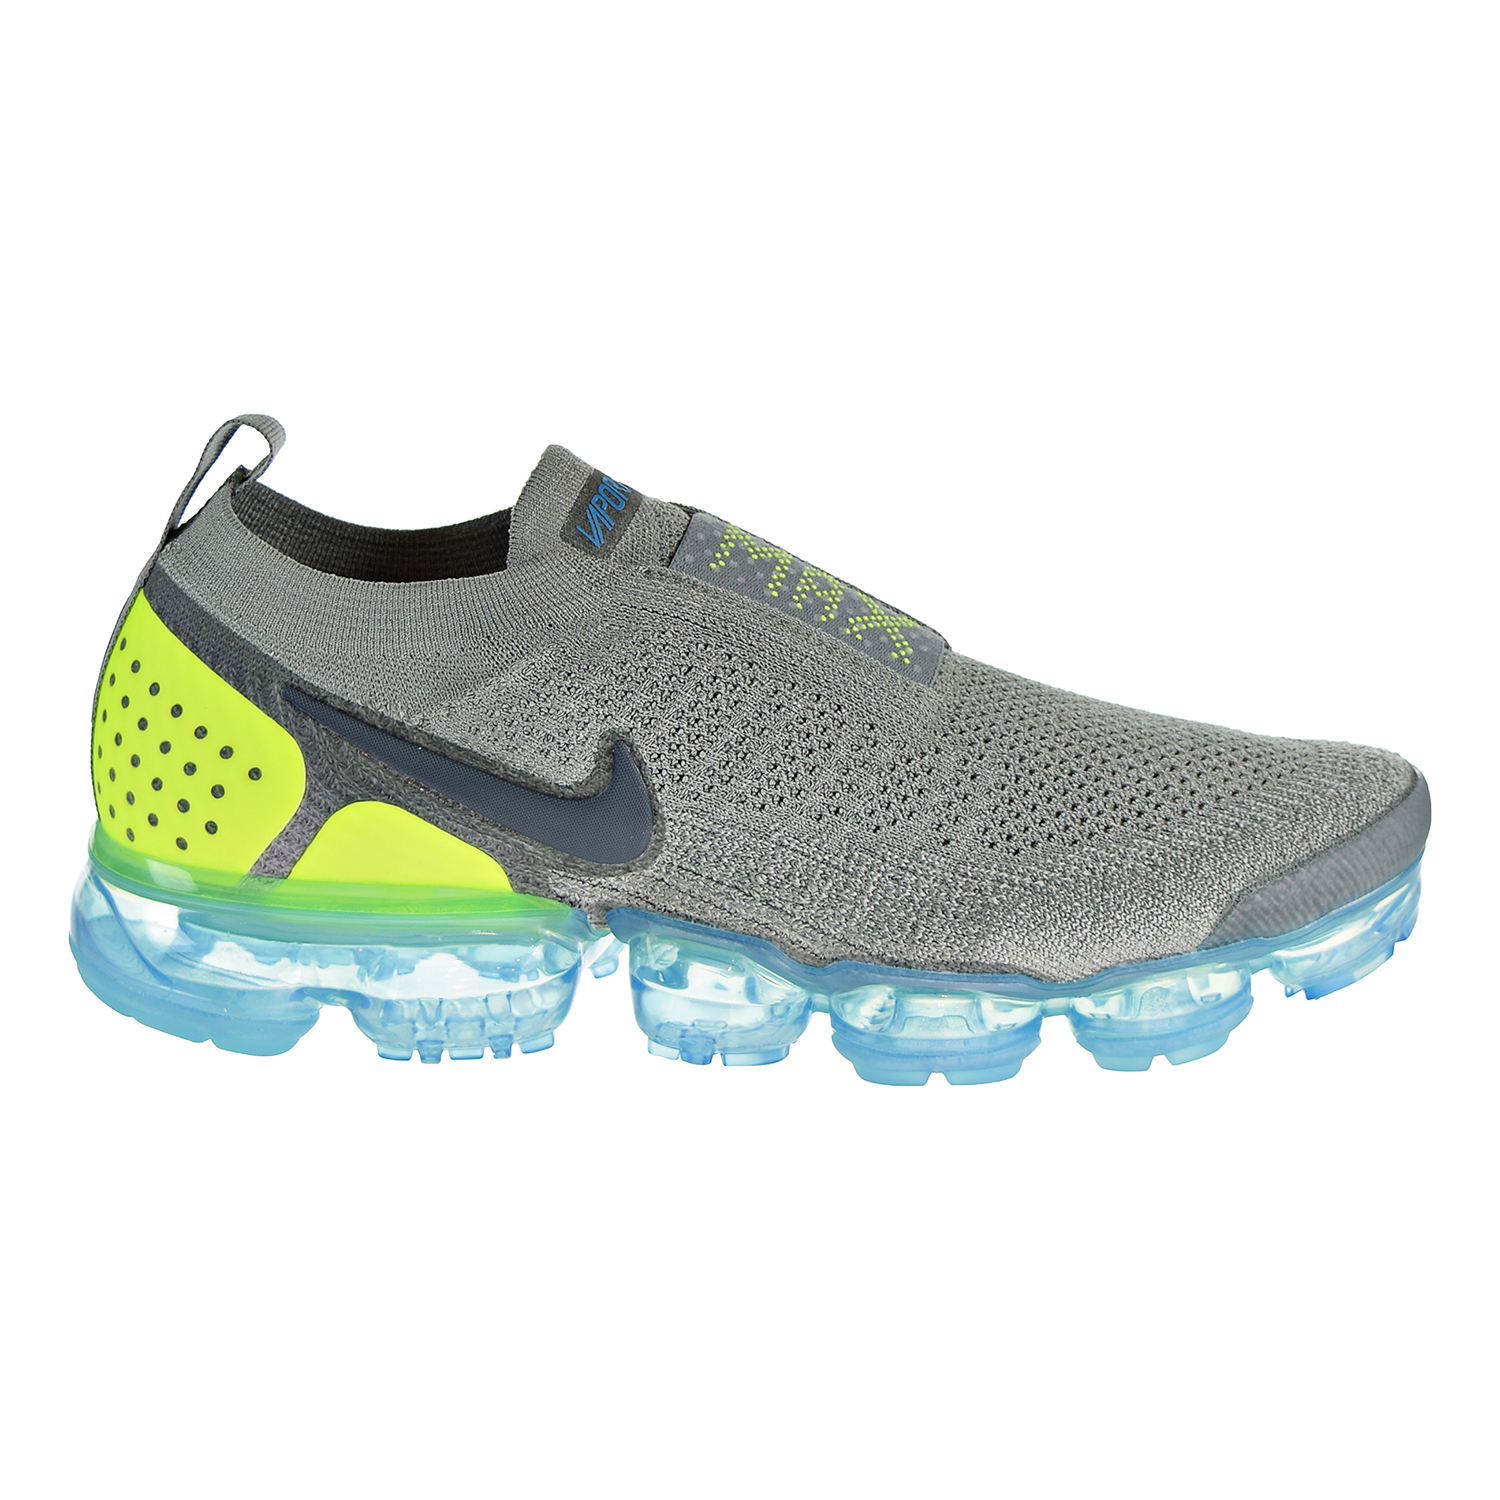 6036080c67a5 Details about Nike Air VaporMax Flyknit Moc 2 Unisex Shoe Mica  Green Volt-Turquoise AH7006-300